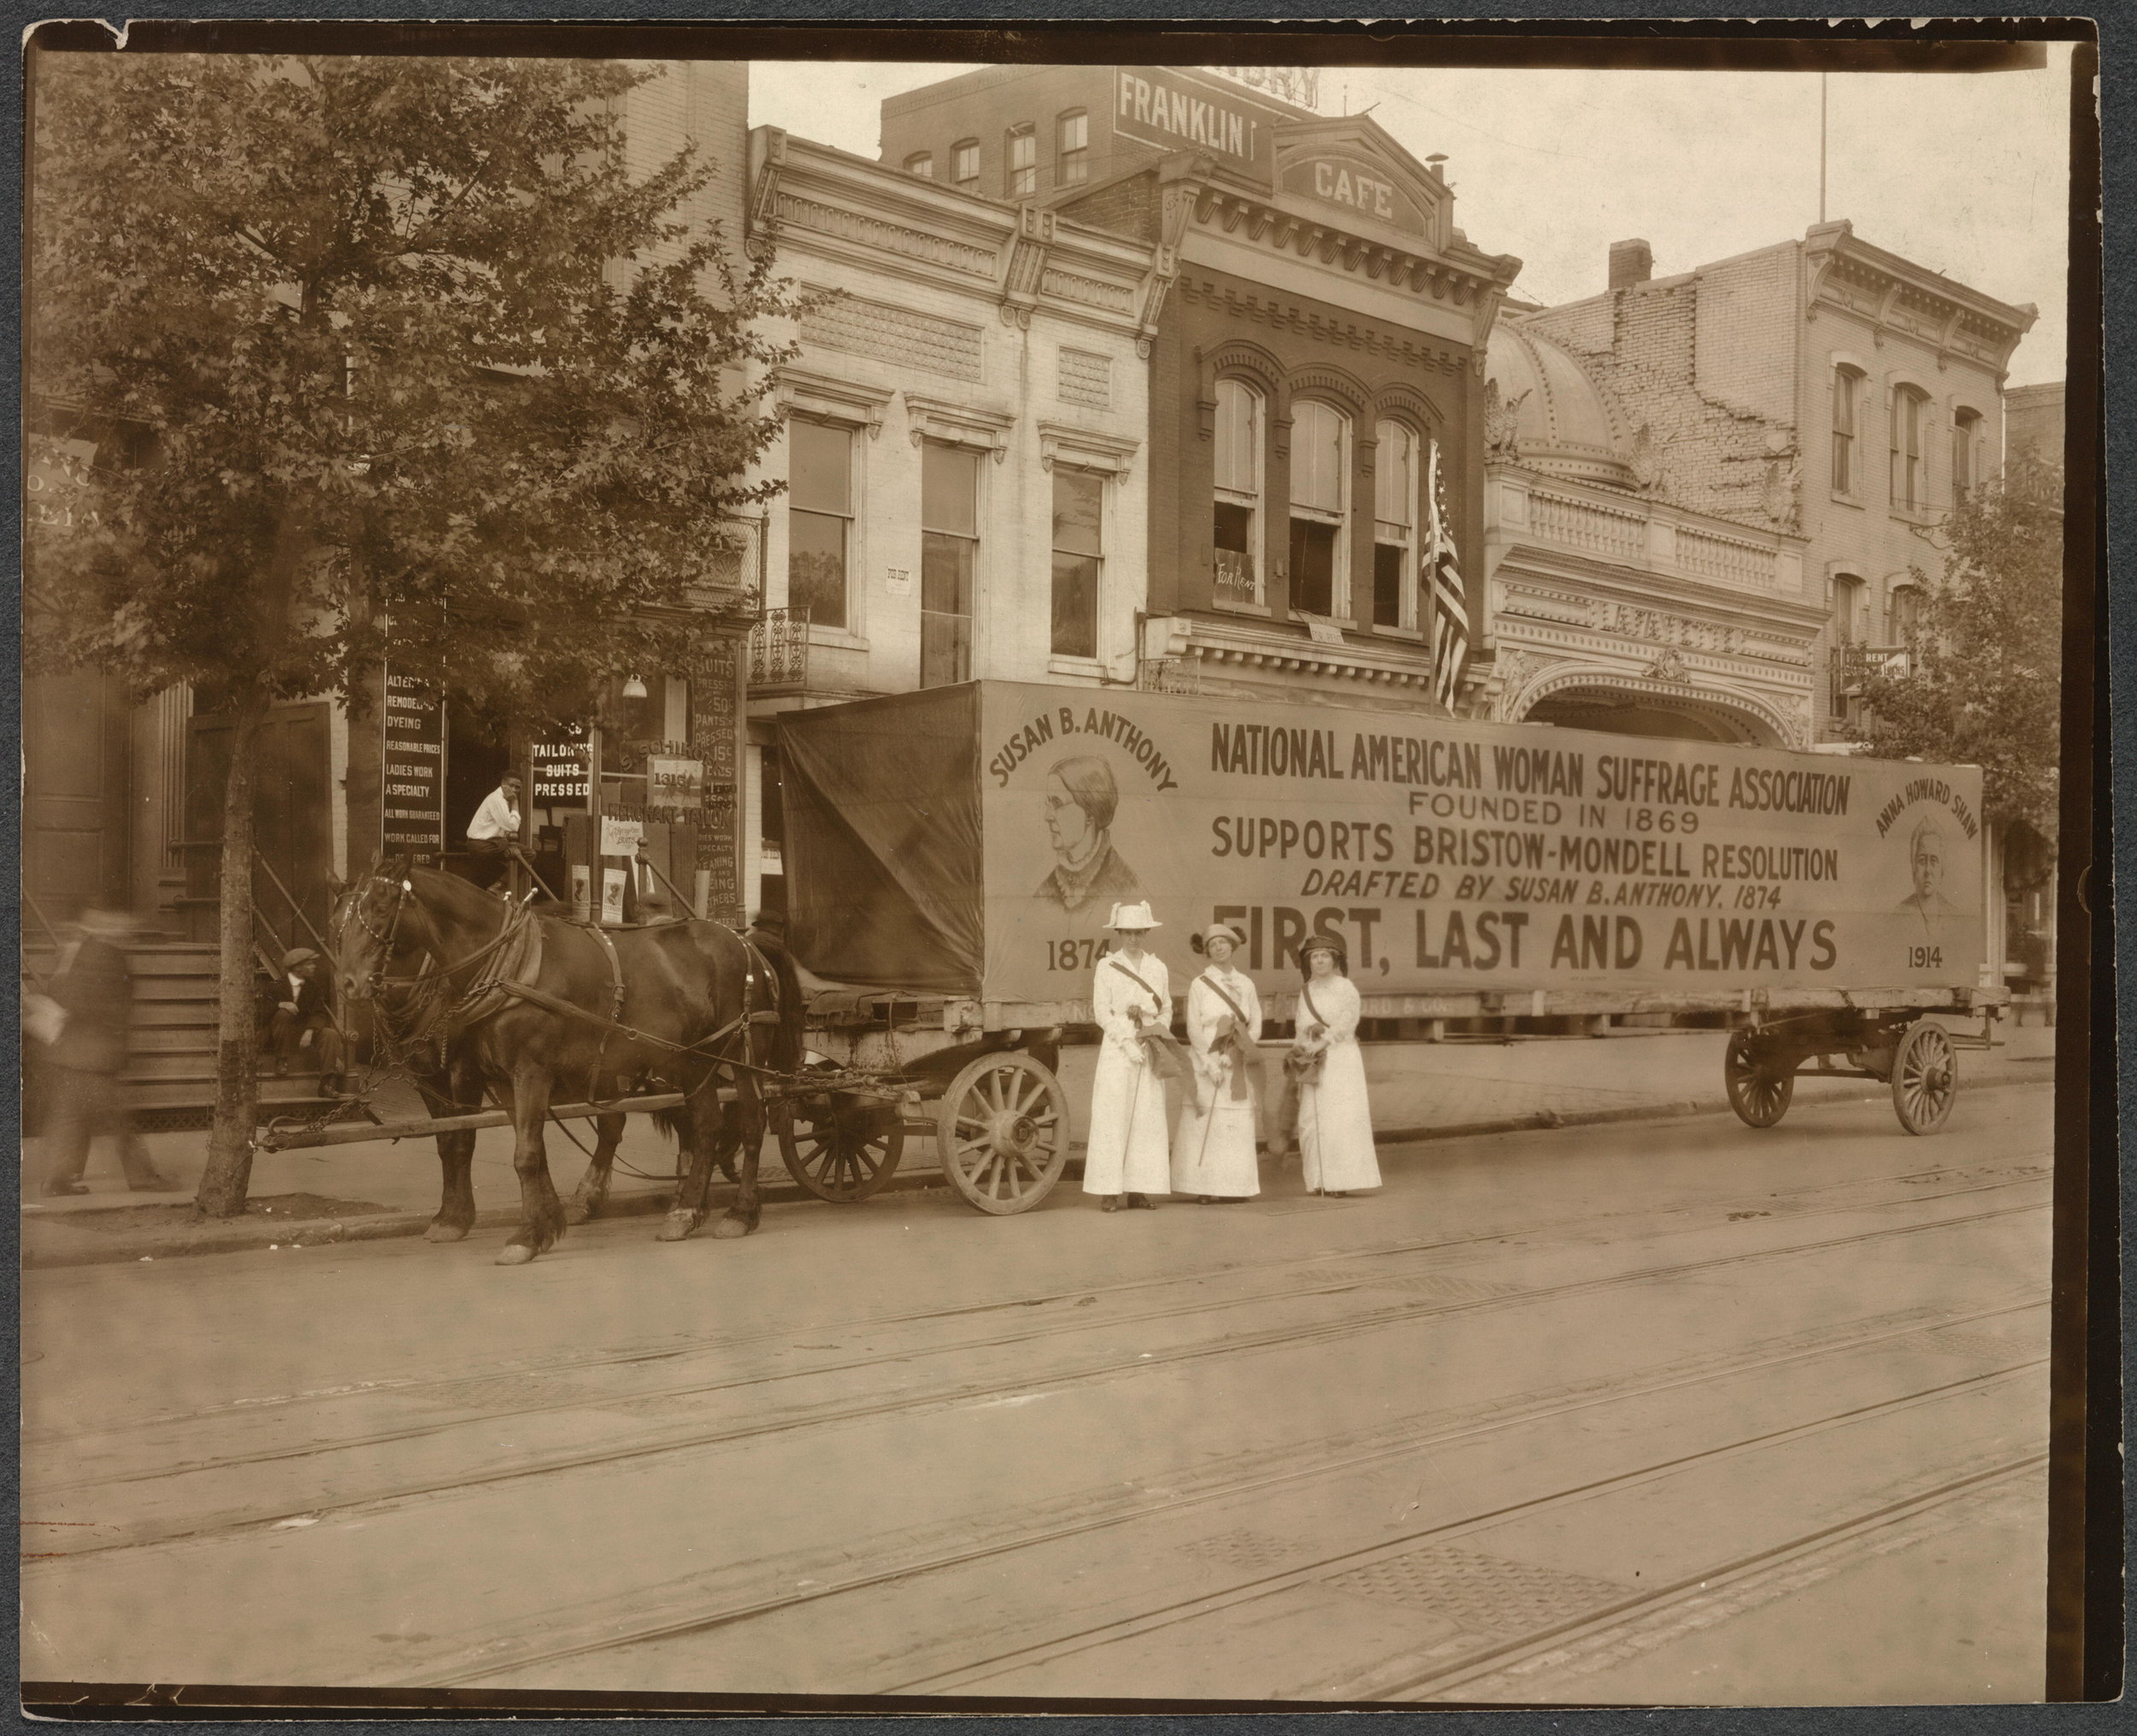 Horse drawn float declares National American Woman Suffrage Association's support for Bristow-Mondell amendment